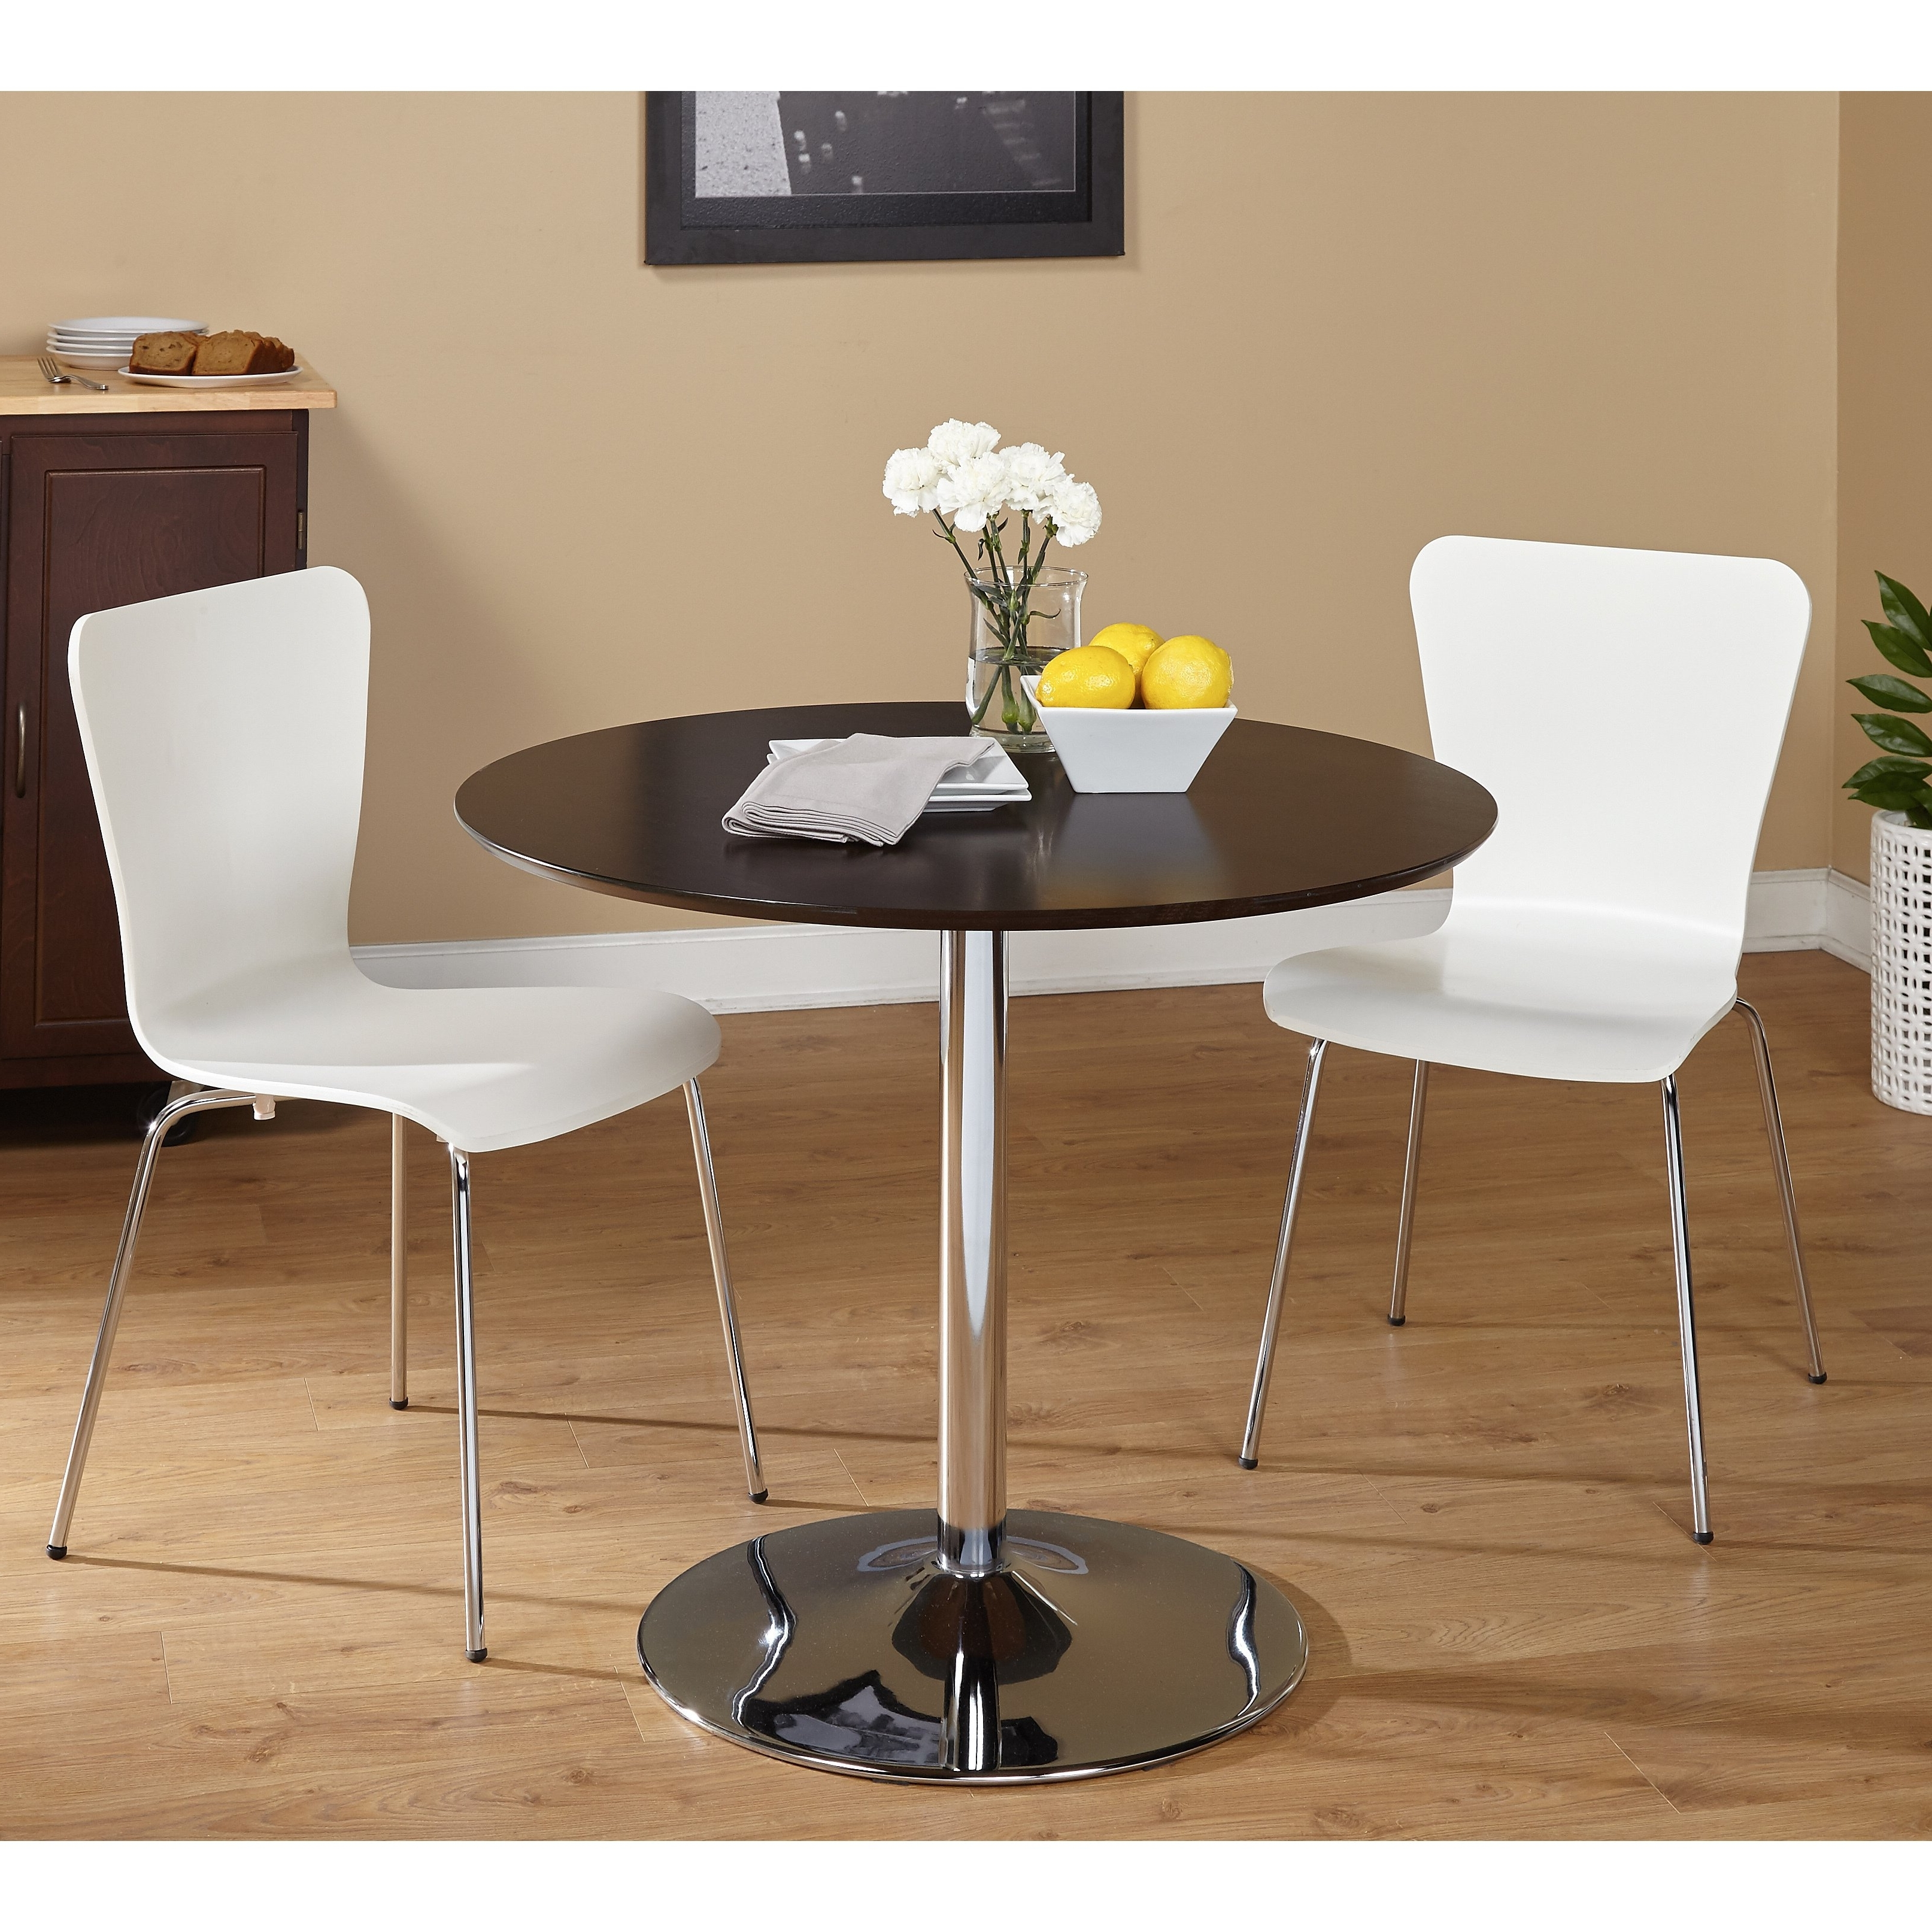 Popular Pisa Dining Tables Intended For Shop 3 Piece Pisa Dining Set – Free Shipping Today – Overstock (View 4 of 25)